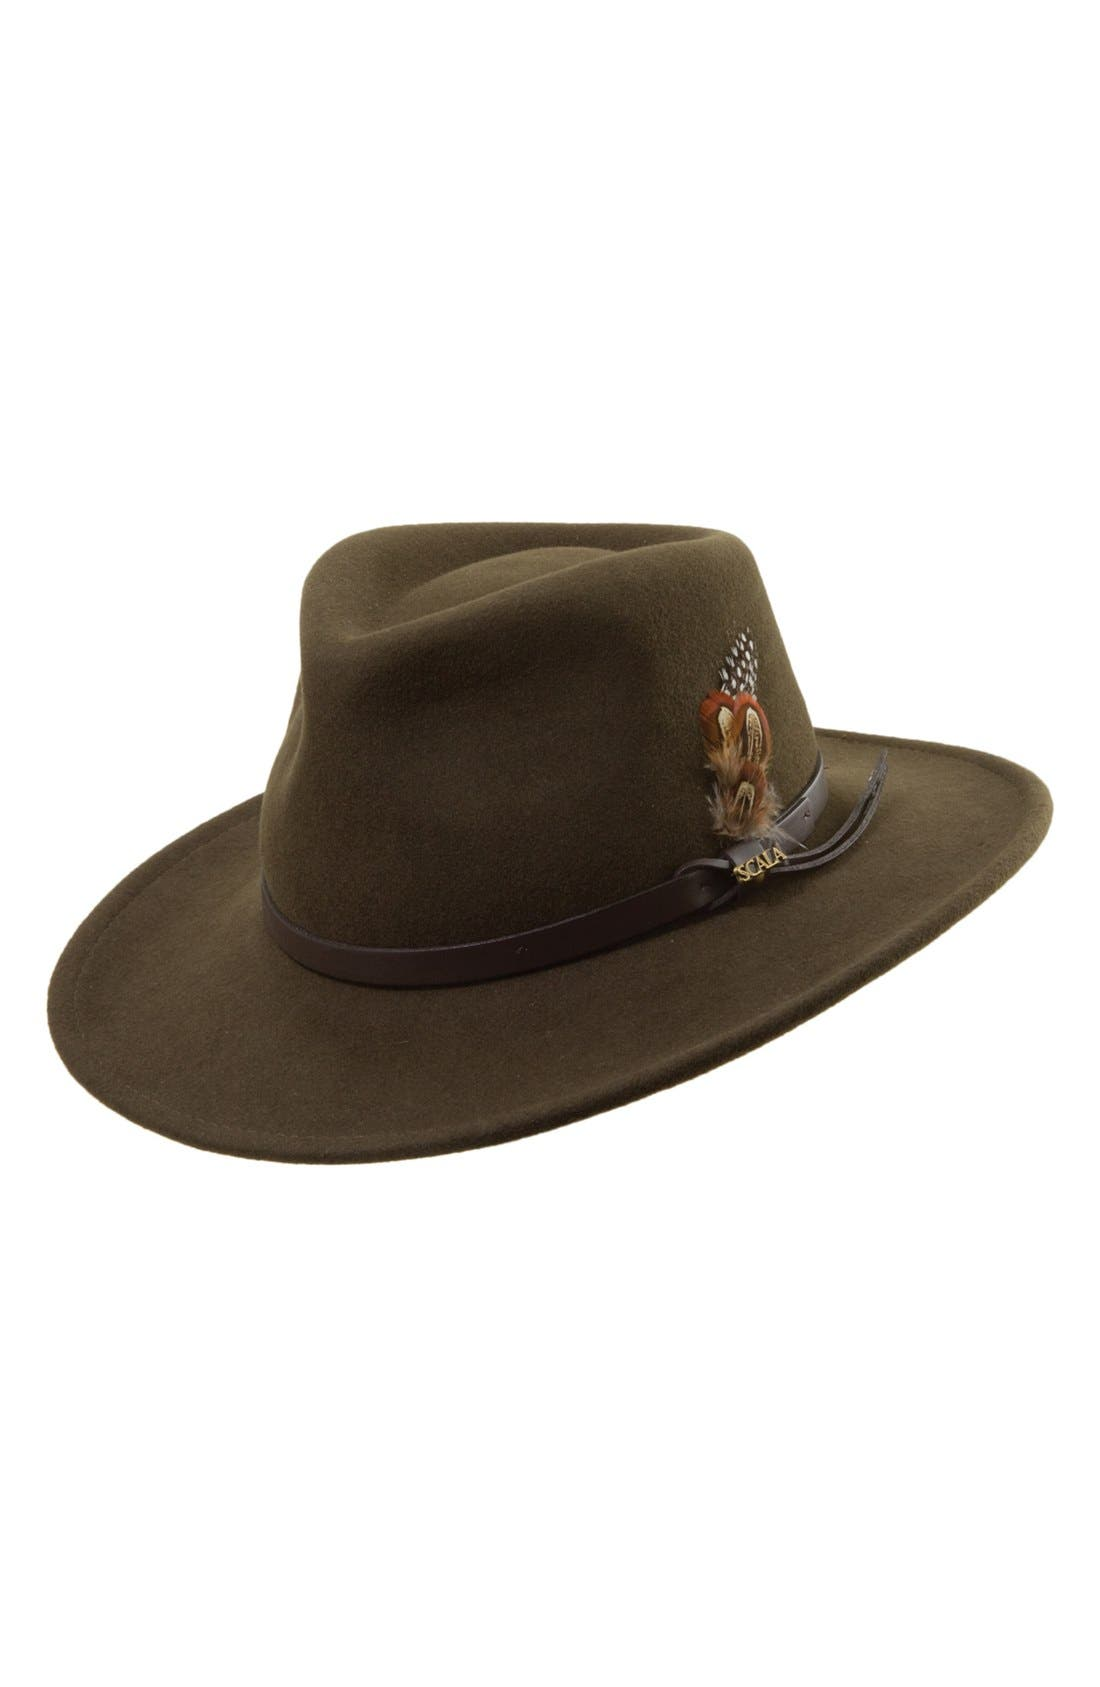 Alternate Image 1 Selected - Scala 'Classico' Crushable Felt Outback Hat